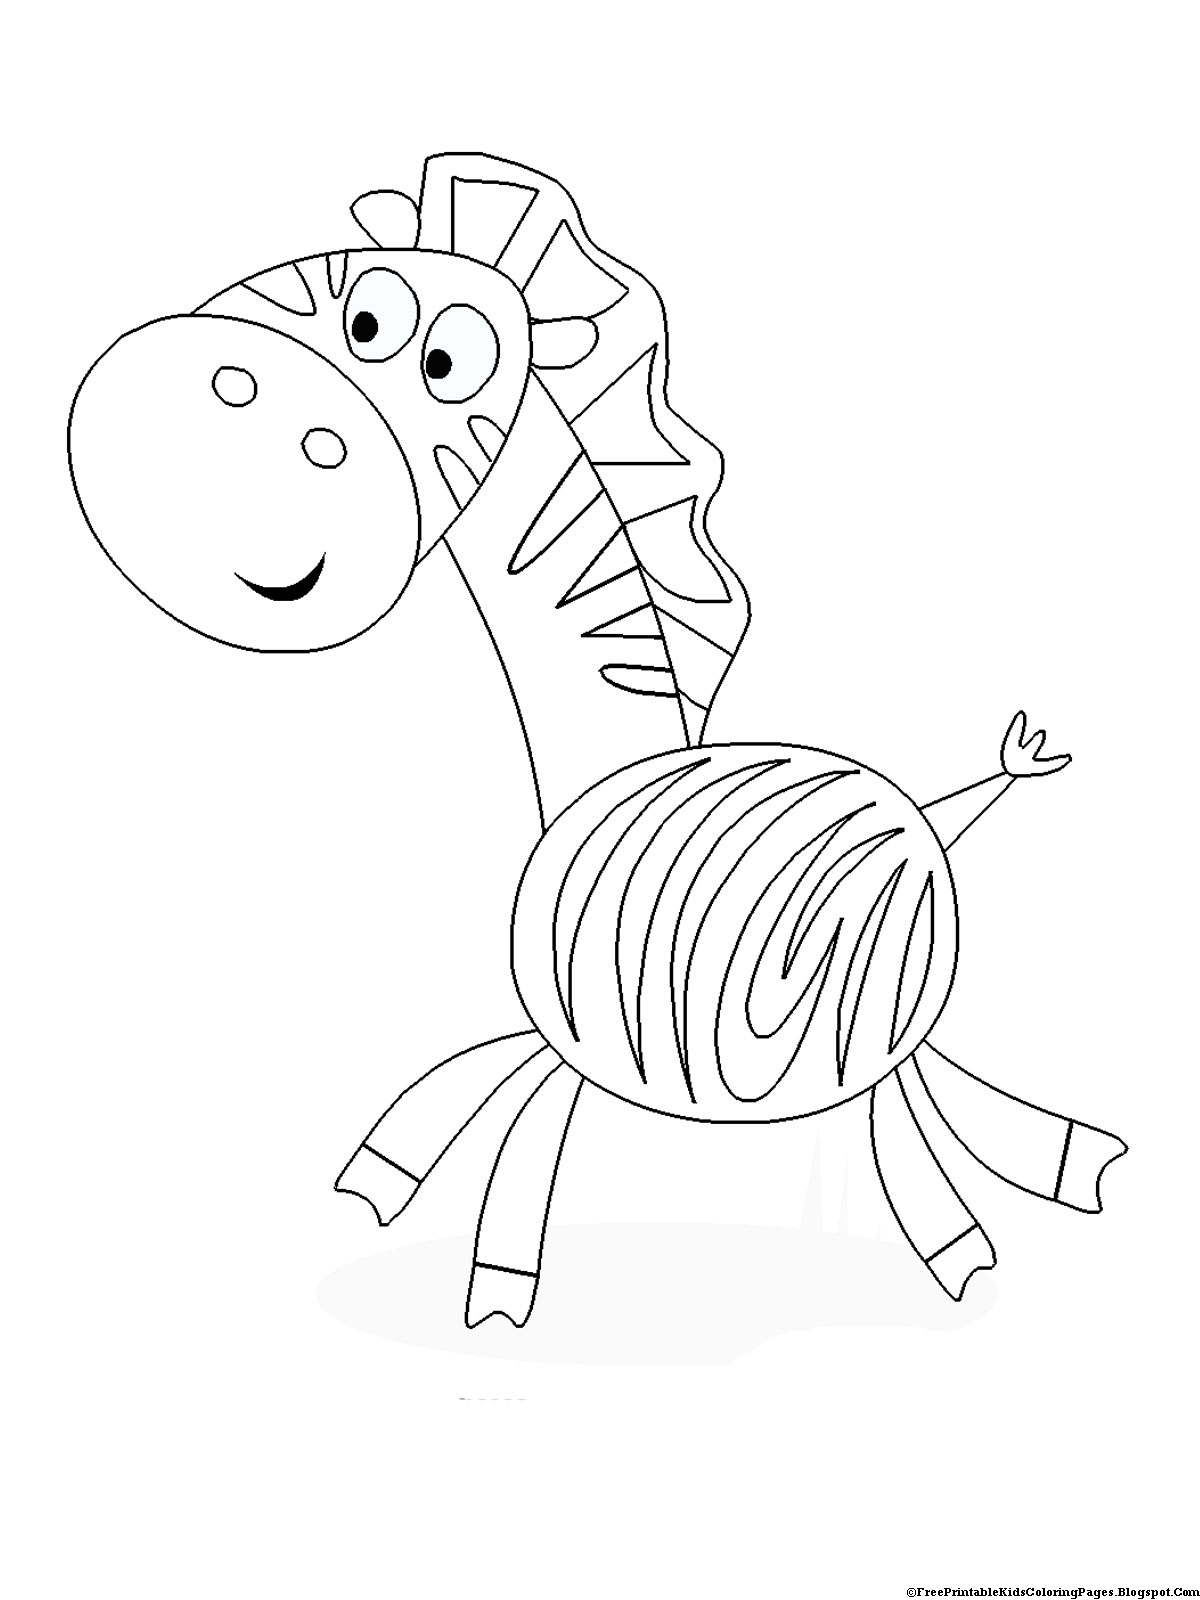 coloring page for kids colouring in pages for kids colouring pages kids page for coloring kids